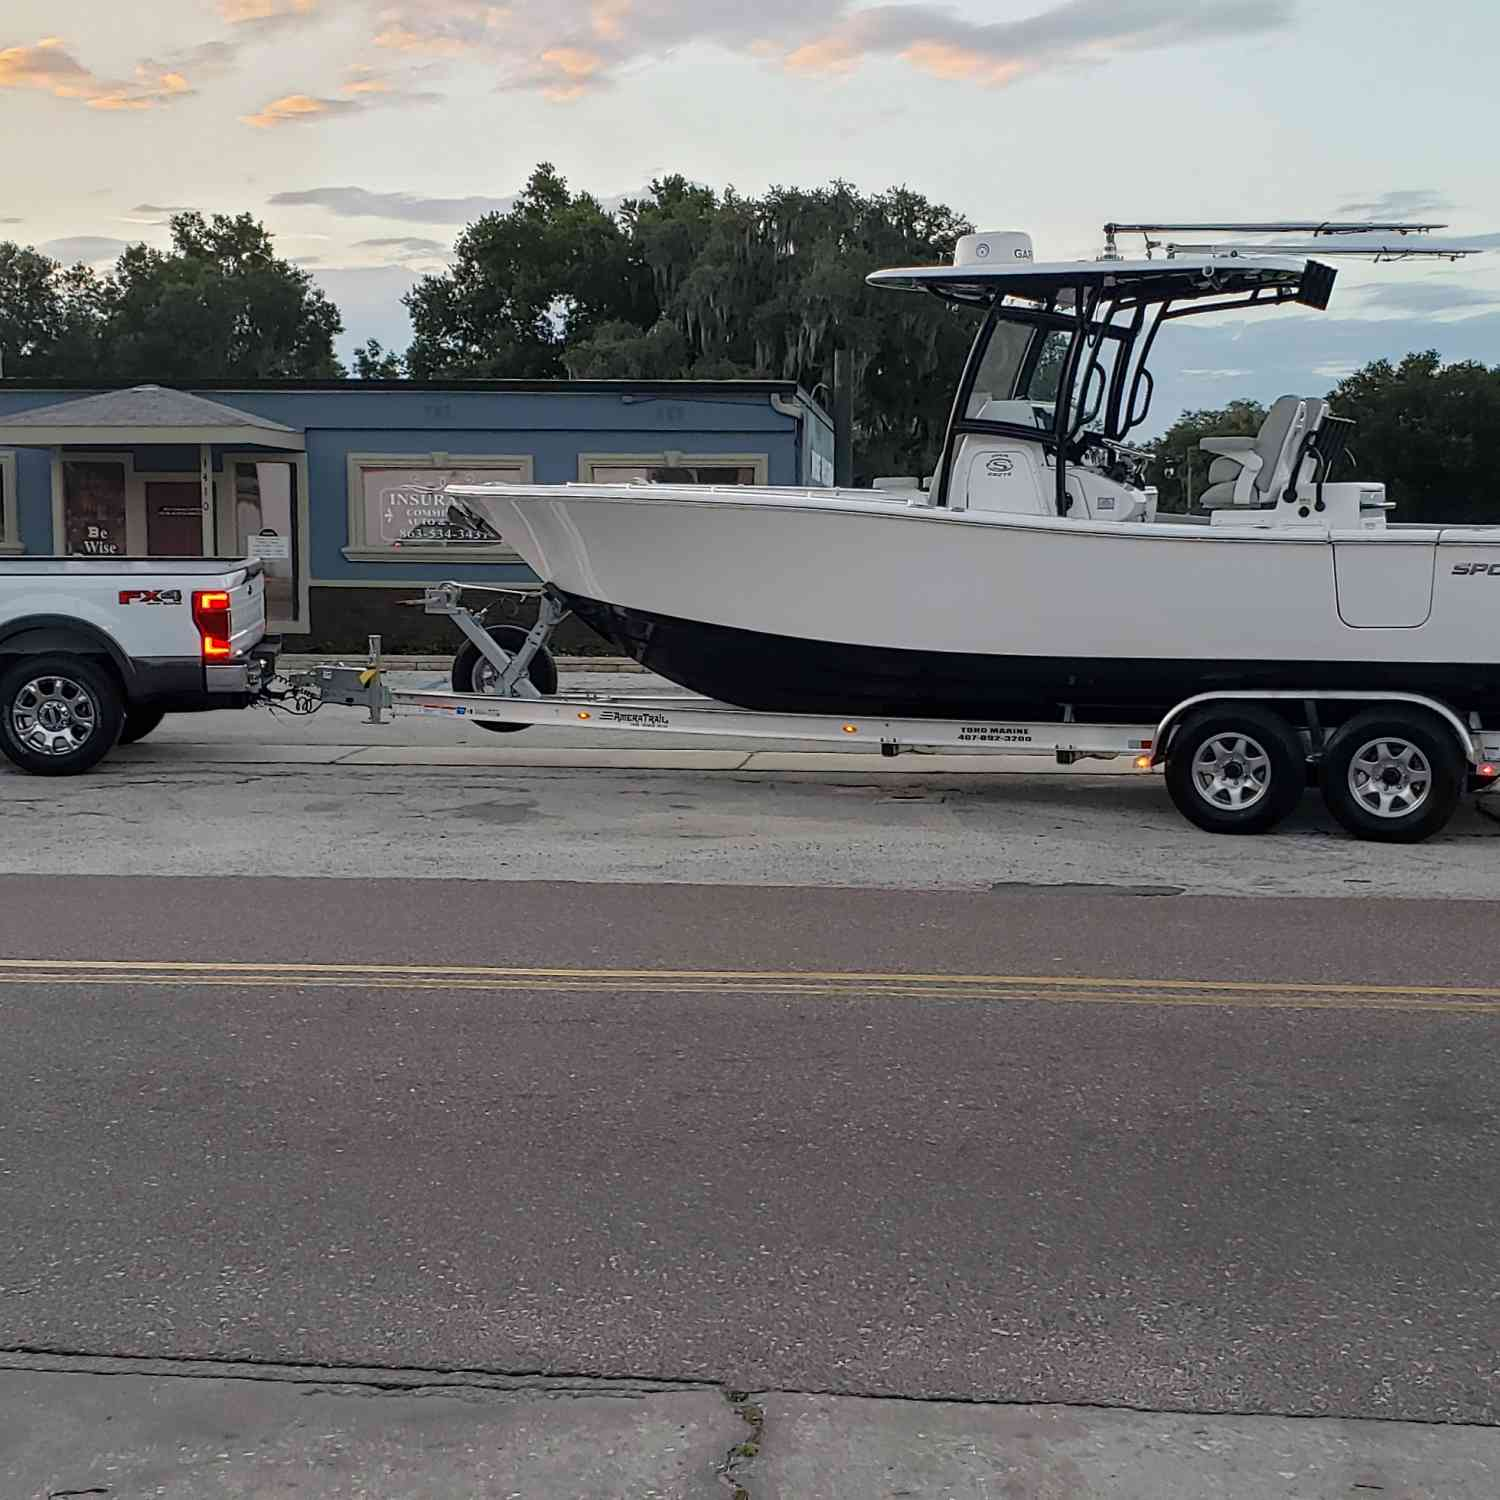 Title: Bringing home the new baby - On board their Sportsman Open 282TE Center Console - Location: Bartow florida. Participating in the Photo Contest #SportsmanJune2020